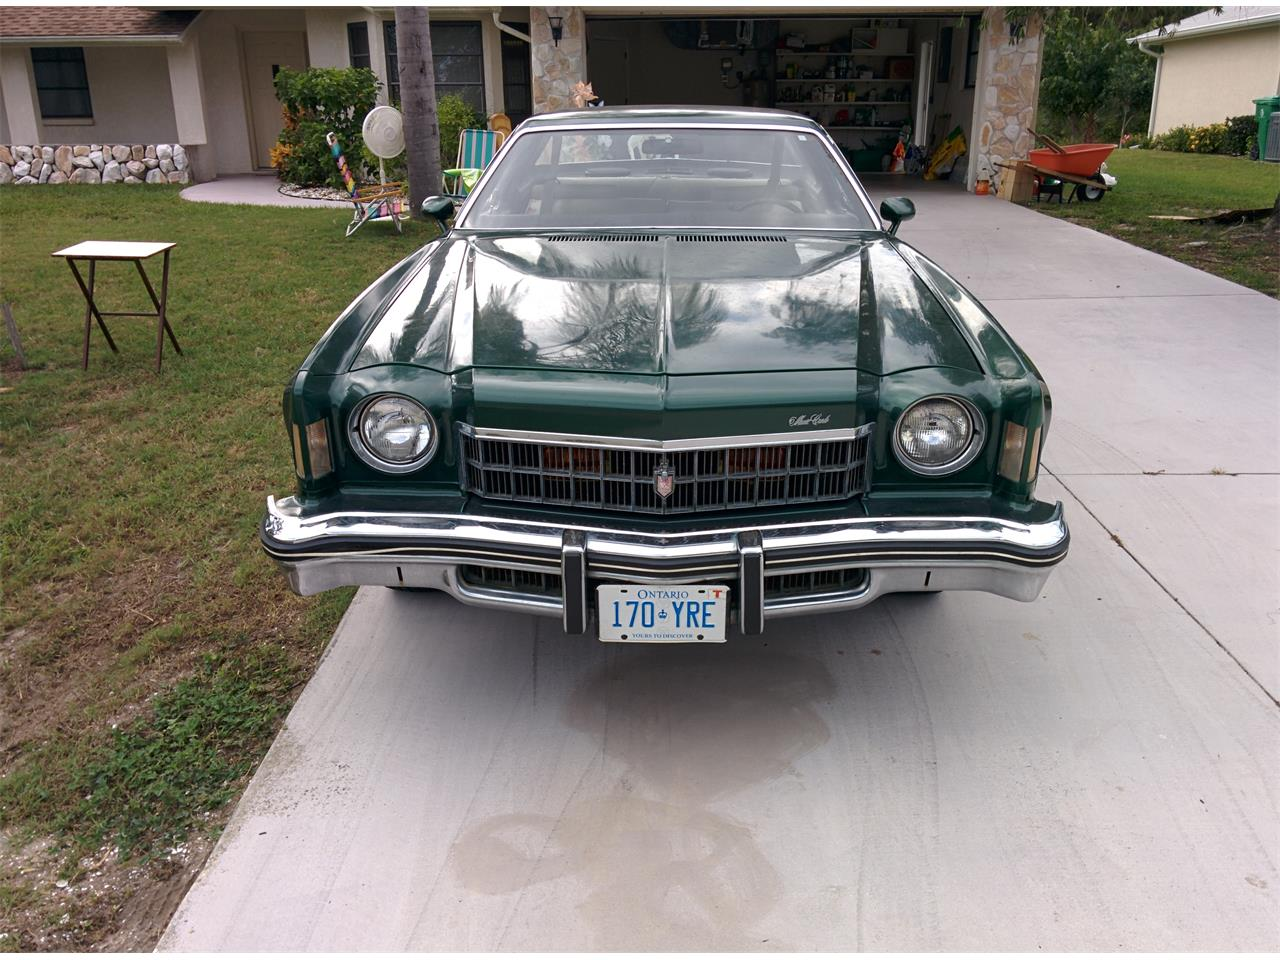 Large Picture of '75 Monte Carlo Landau located in Kinsville Ontario - $7,500.00 Offered by a Private Seller - FTXT